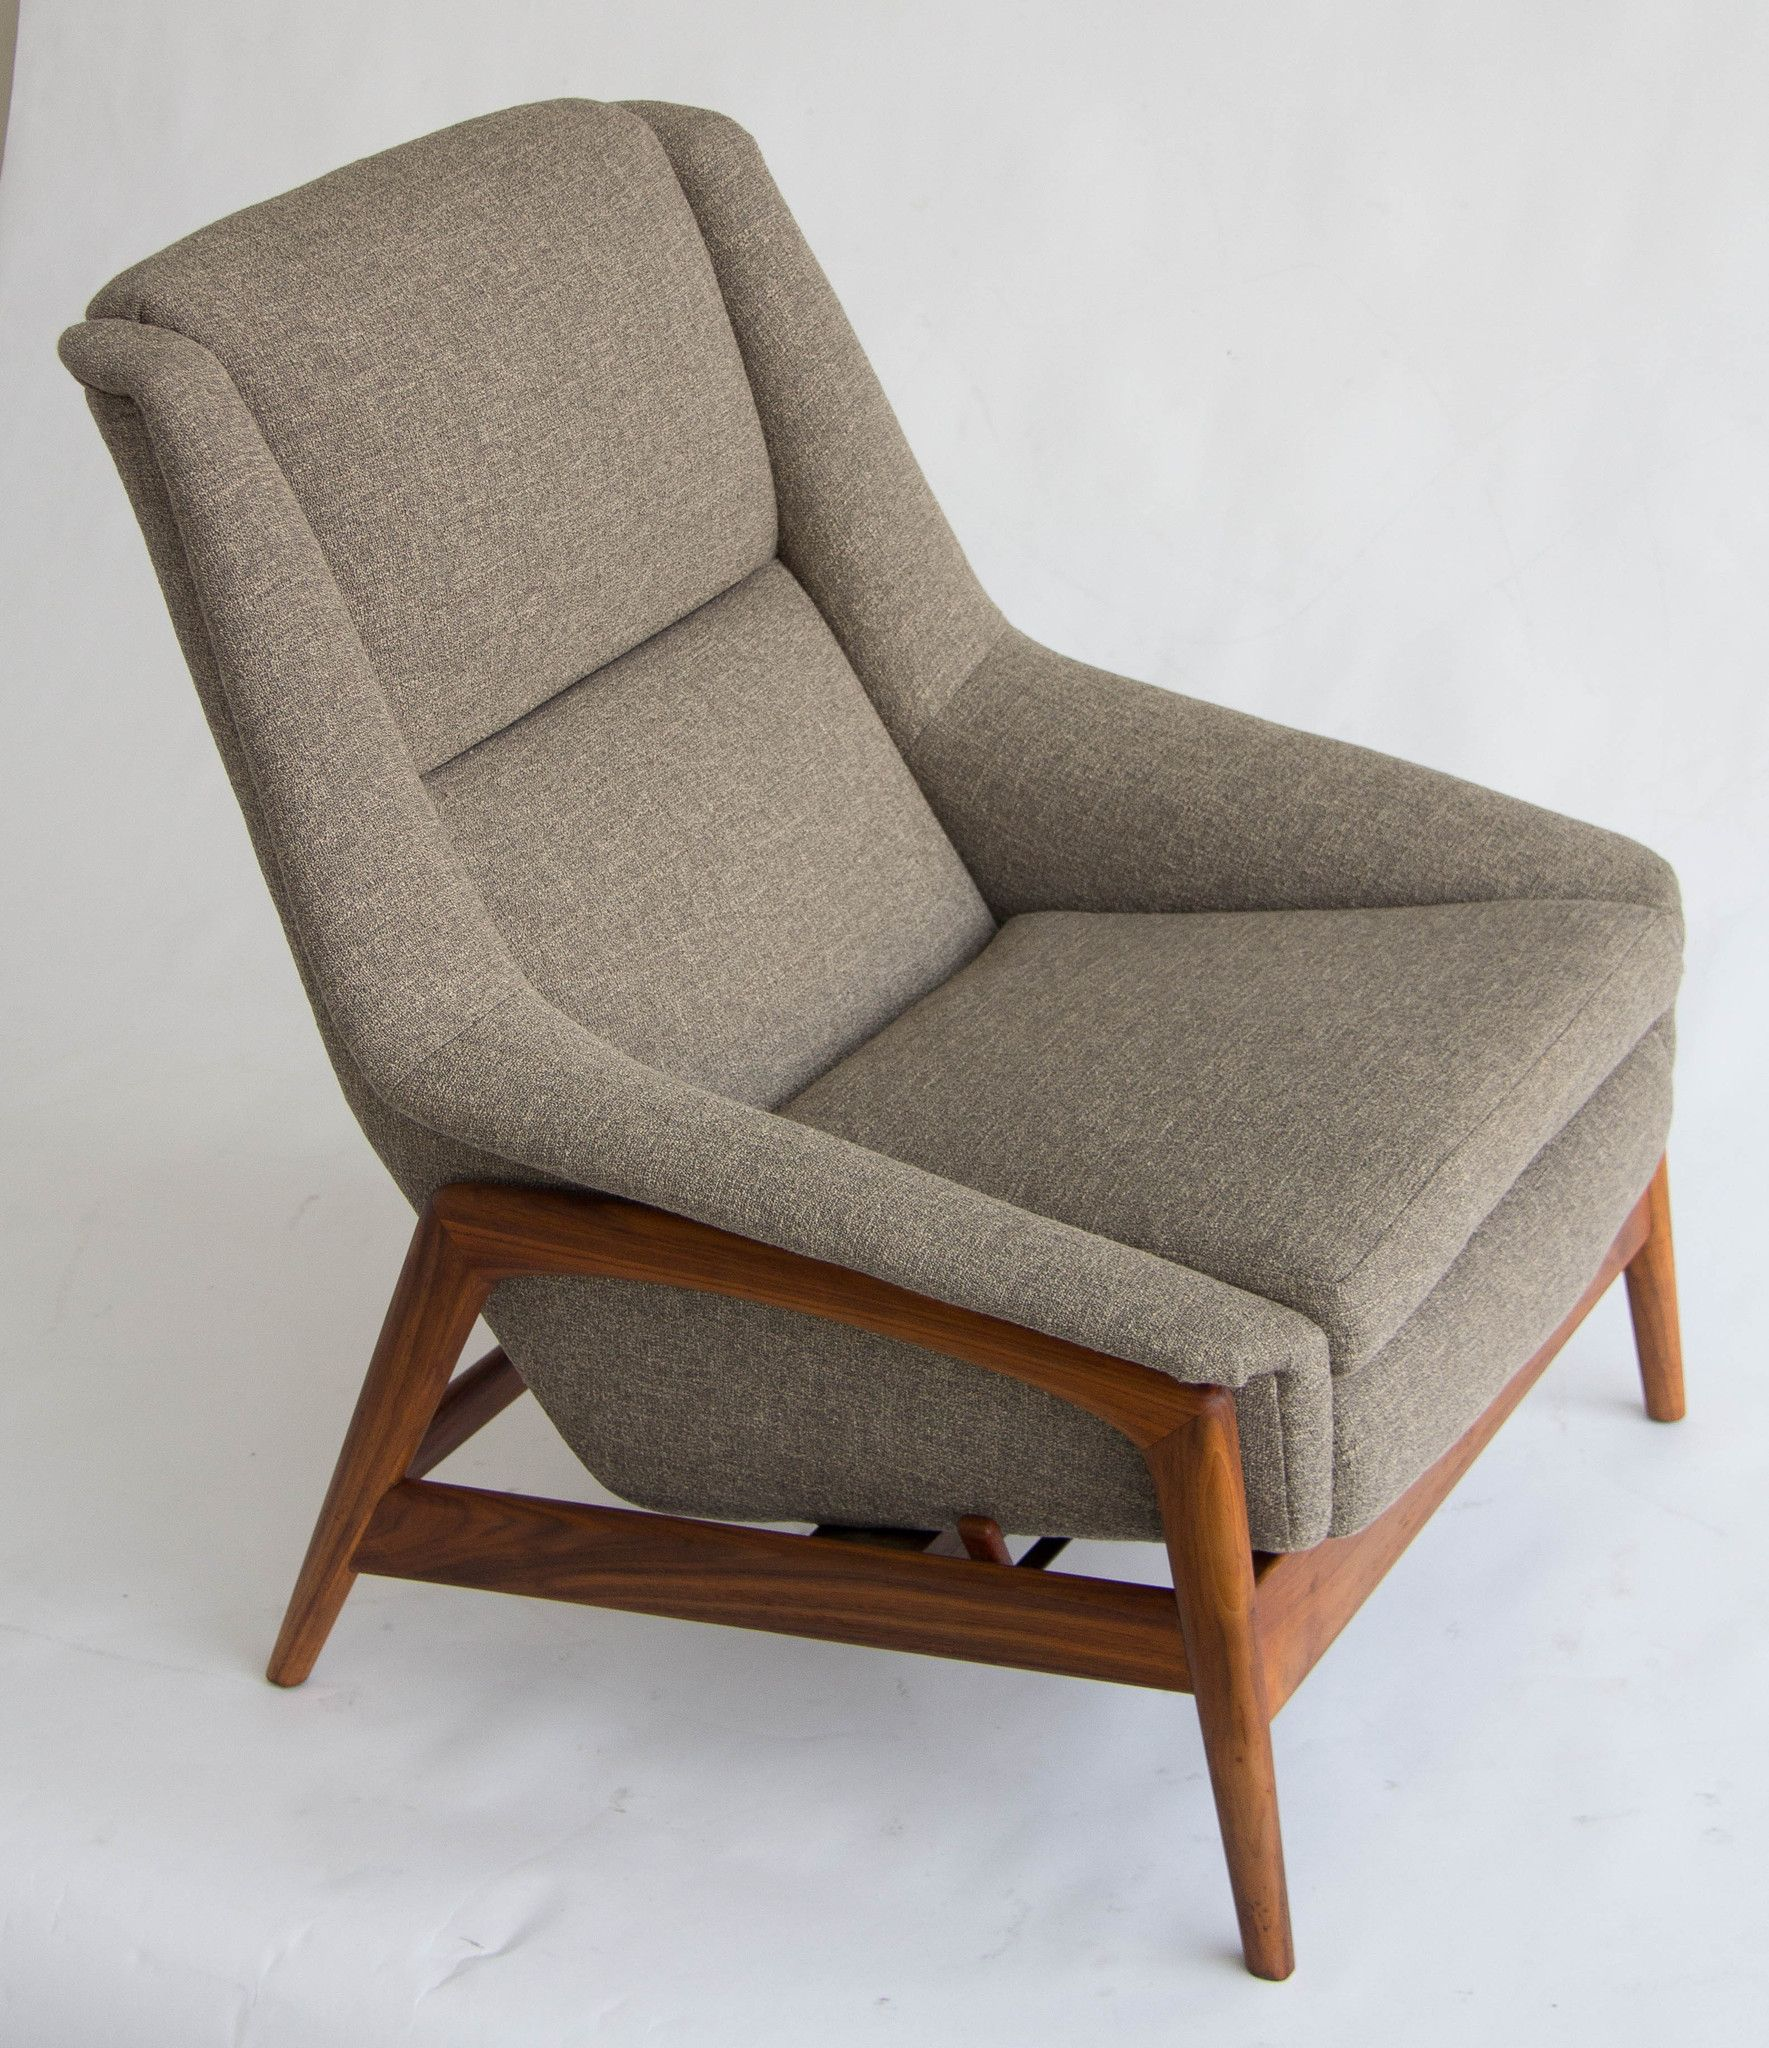 Wonderful Folke Ohlsson Designed This Reclining Lounge Chair And Ottoman For Dux. The  Upholstered Chair Sits